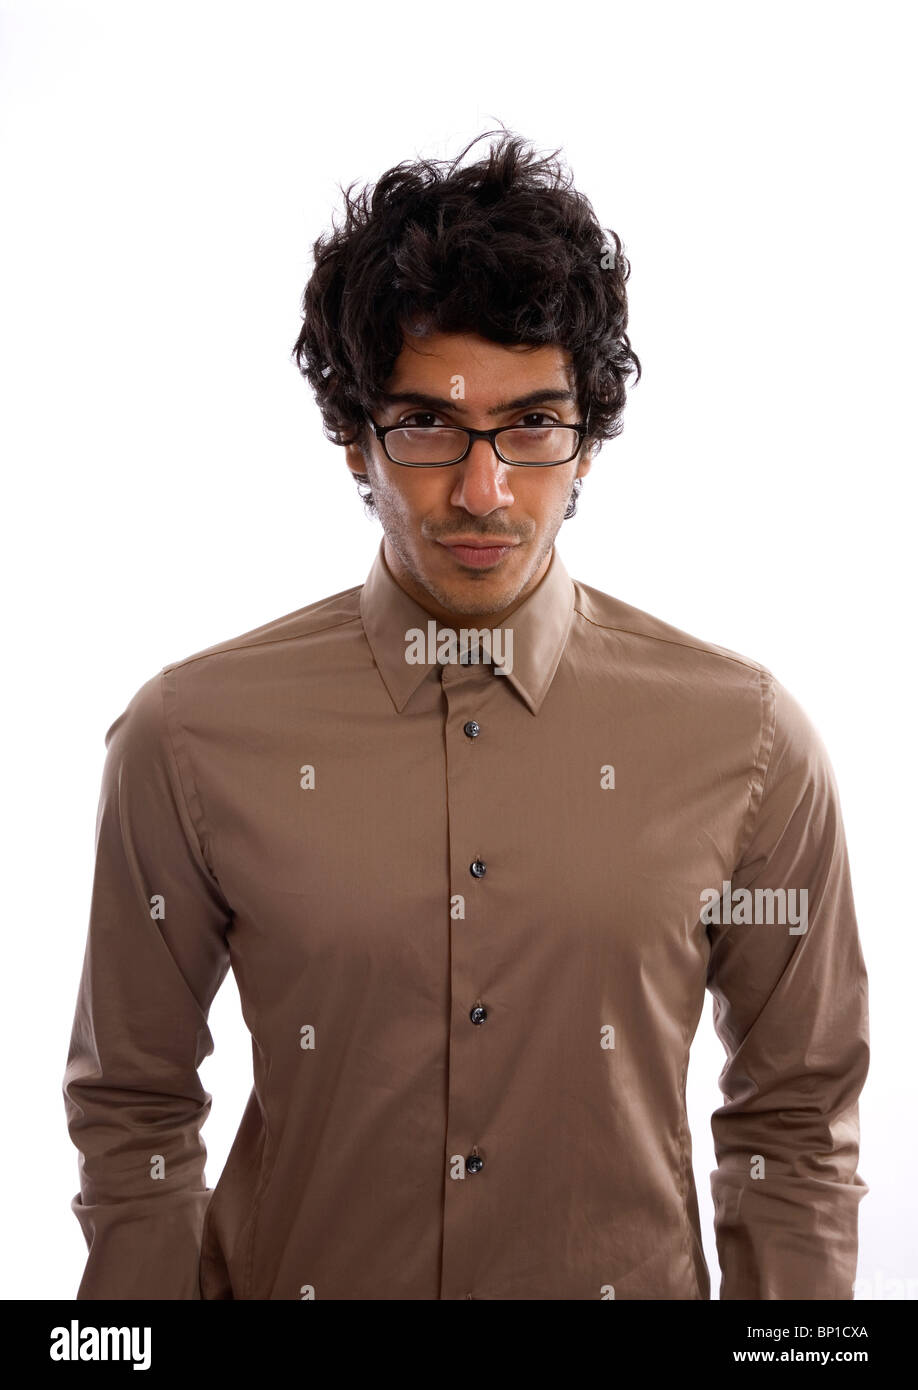 Man in buttoned collar shirt and glasses - intellectual look - Stock Image